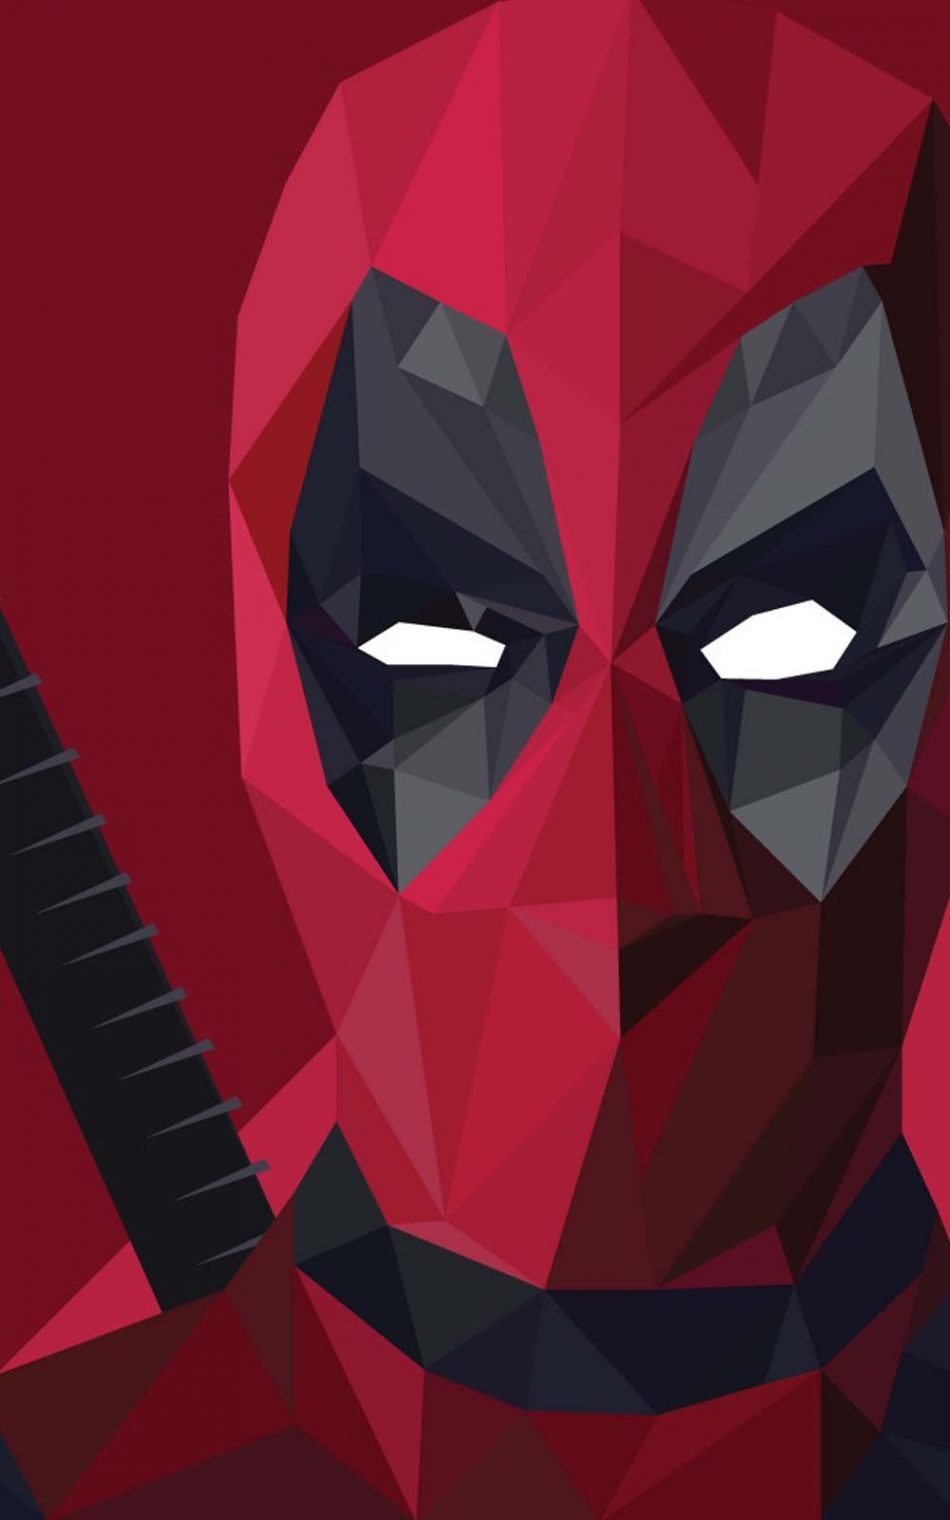 Download Deadpool Prisma Red Free Pure 4k Ultra Hd Mobile